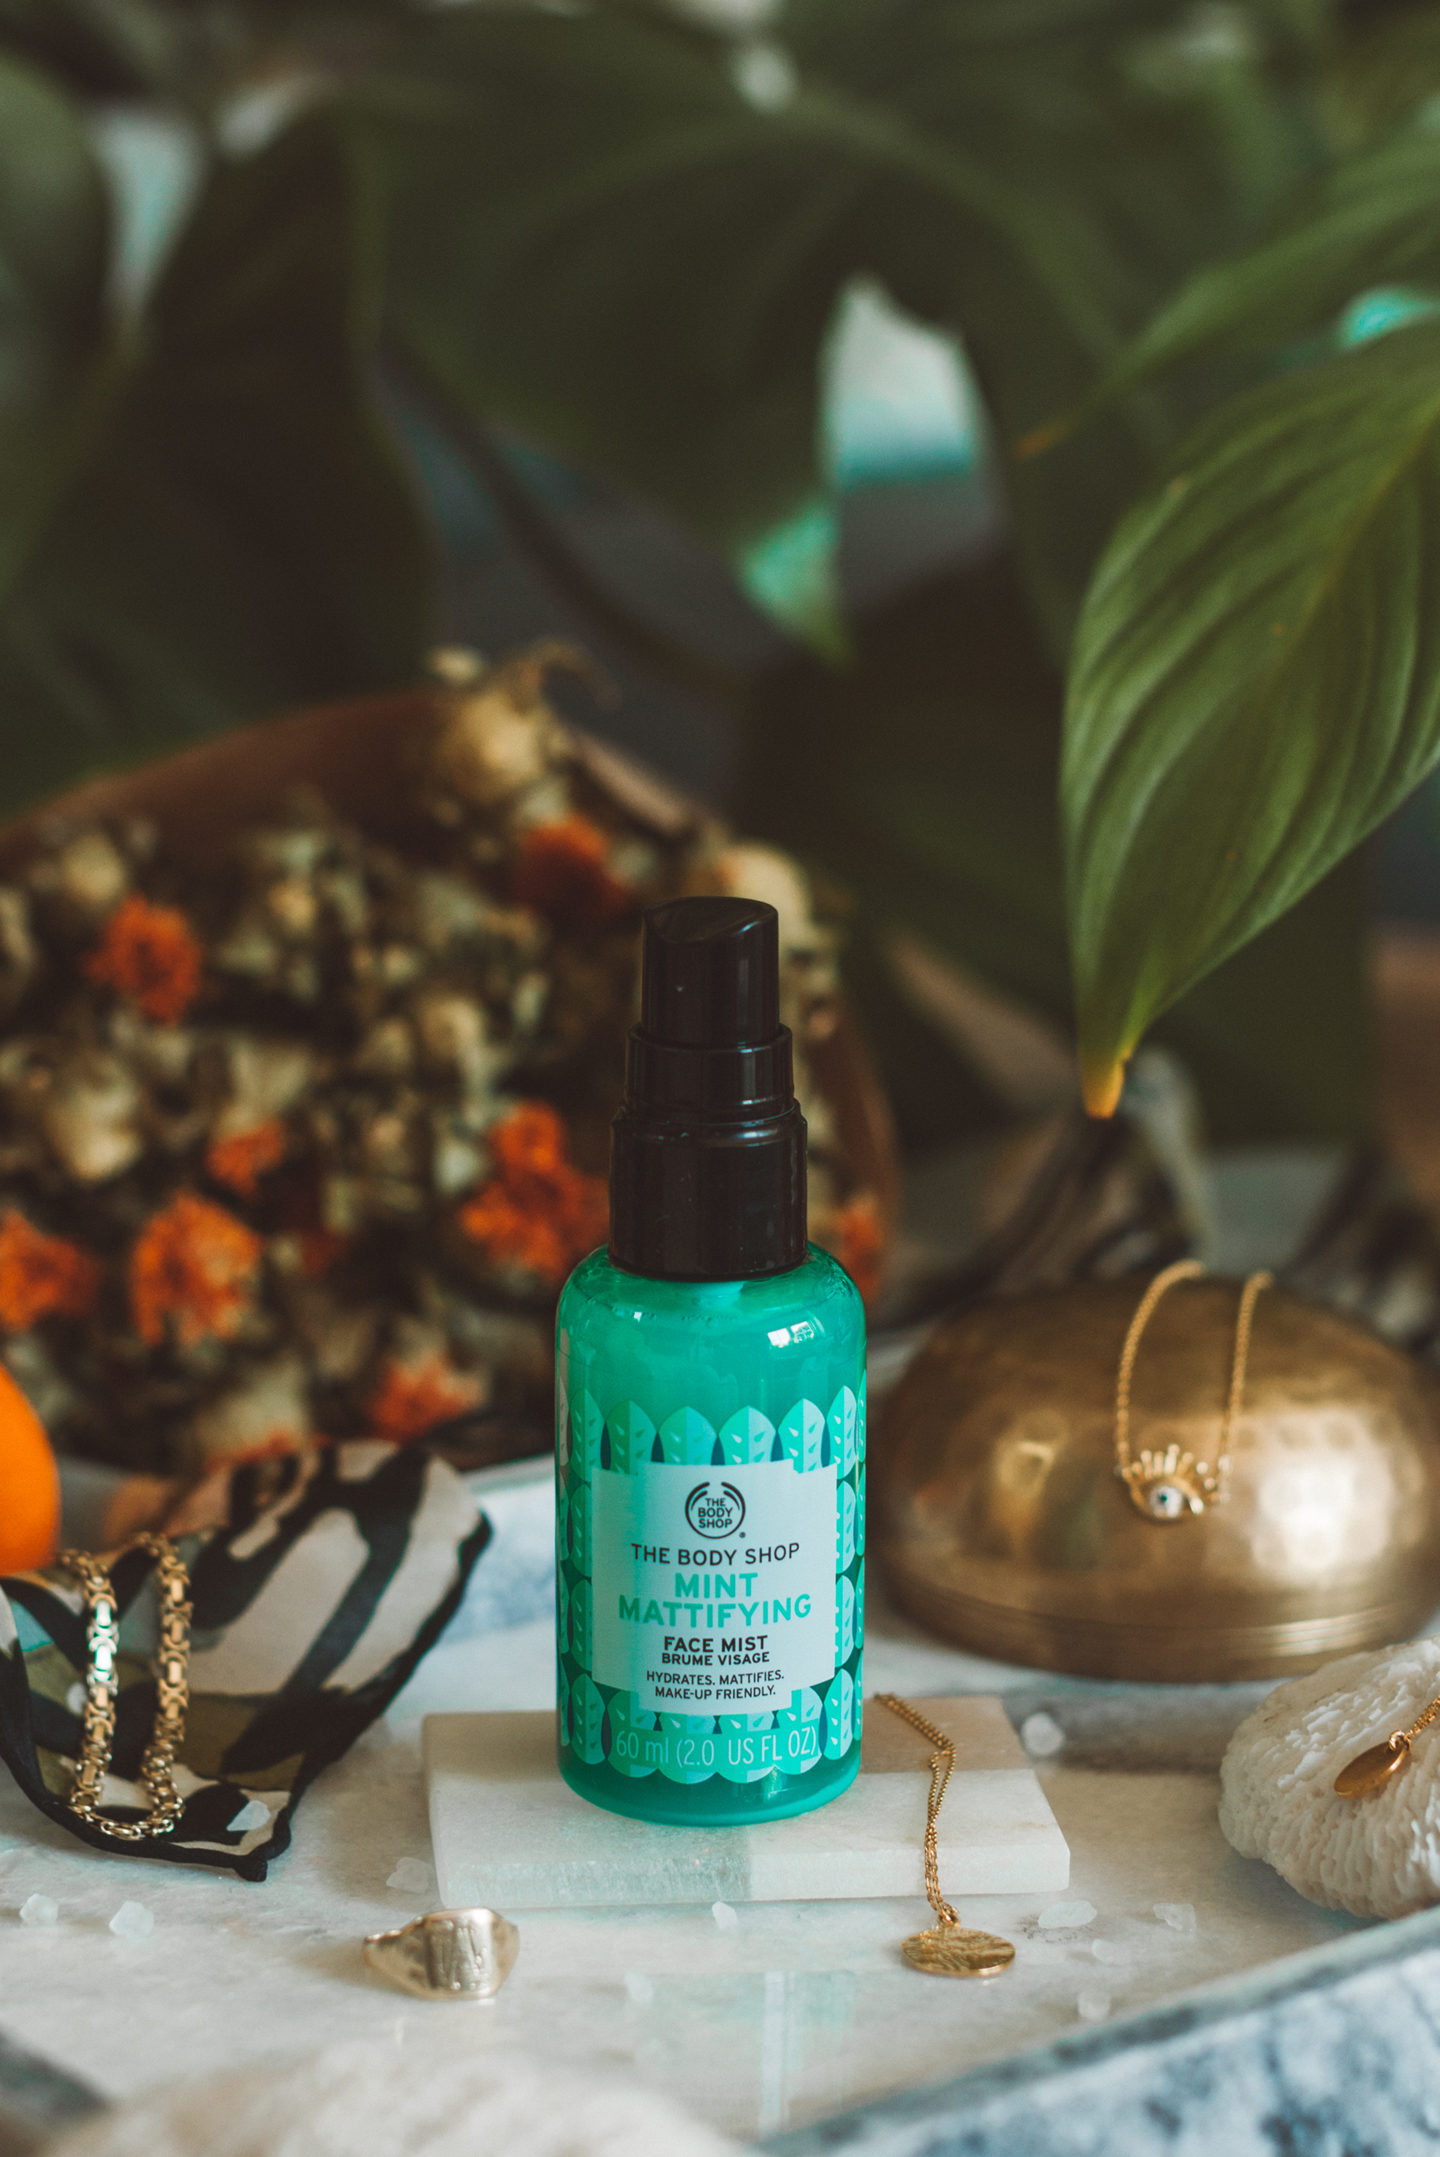 The Body Shop Face mist vegan